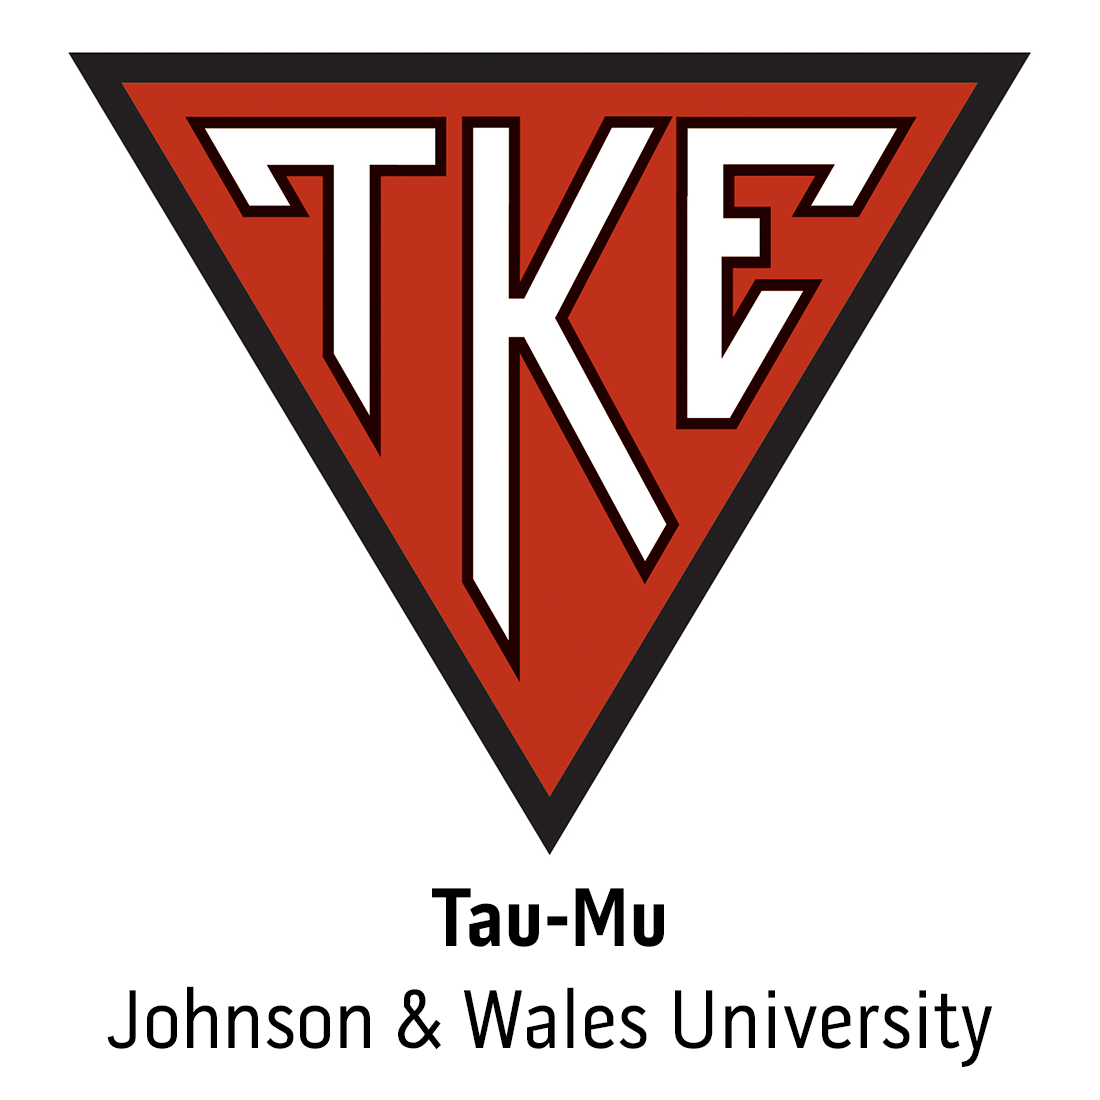 Tau-Mu Chapter at Johnson & Wales University